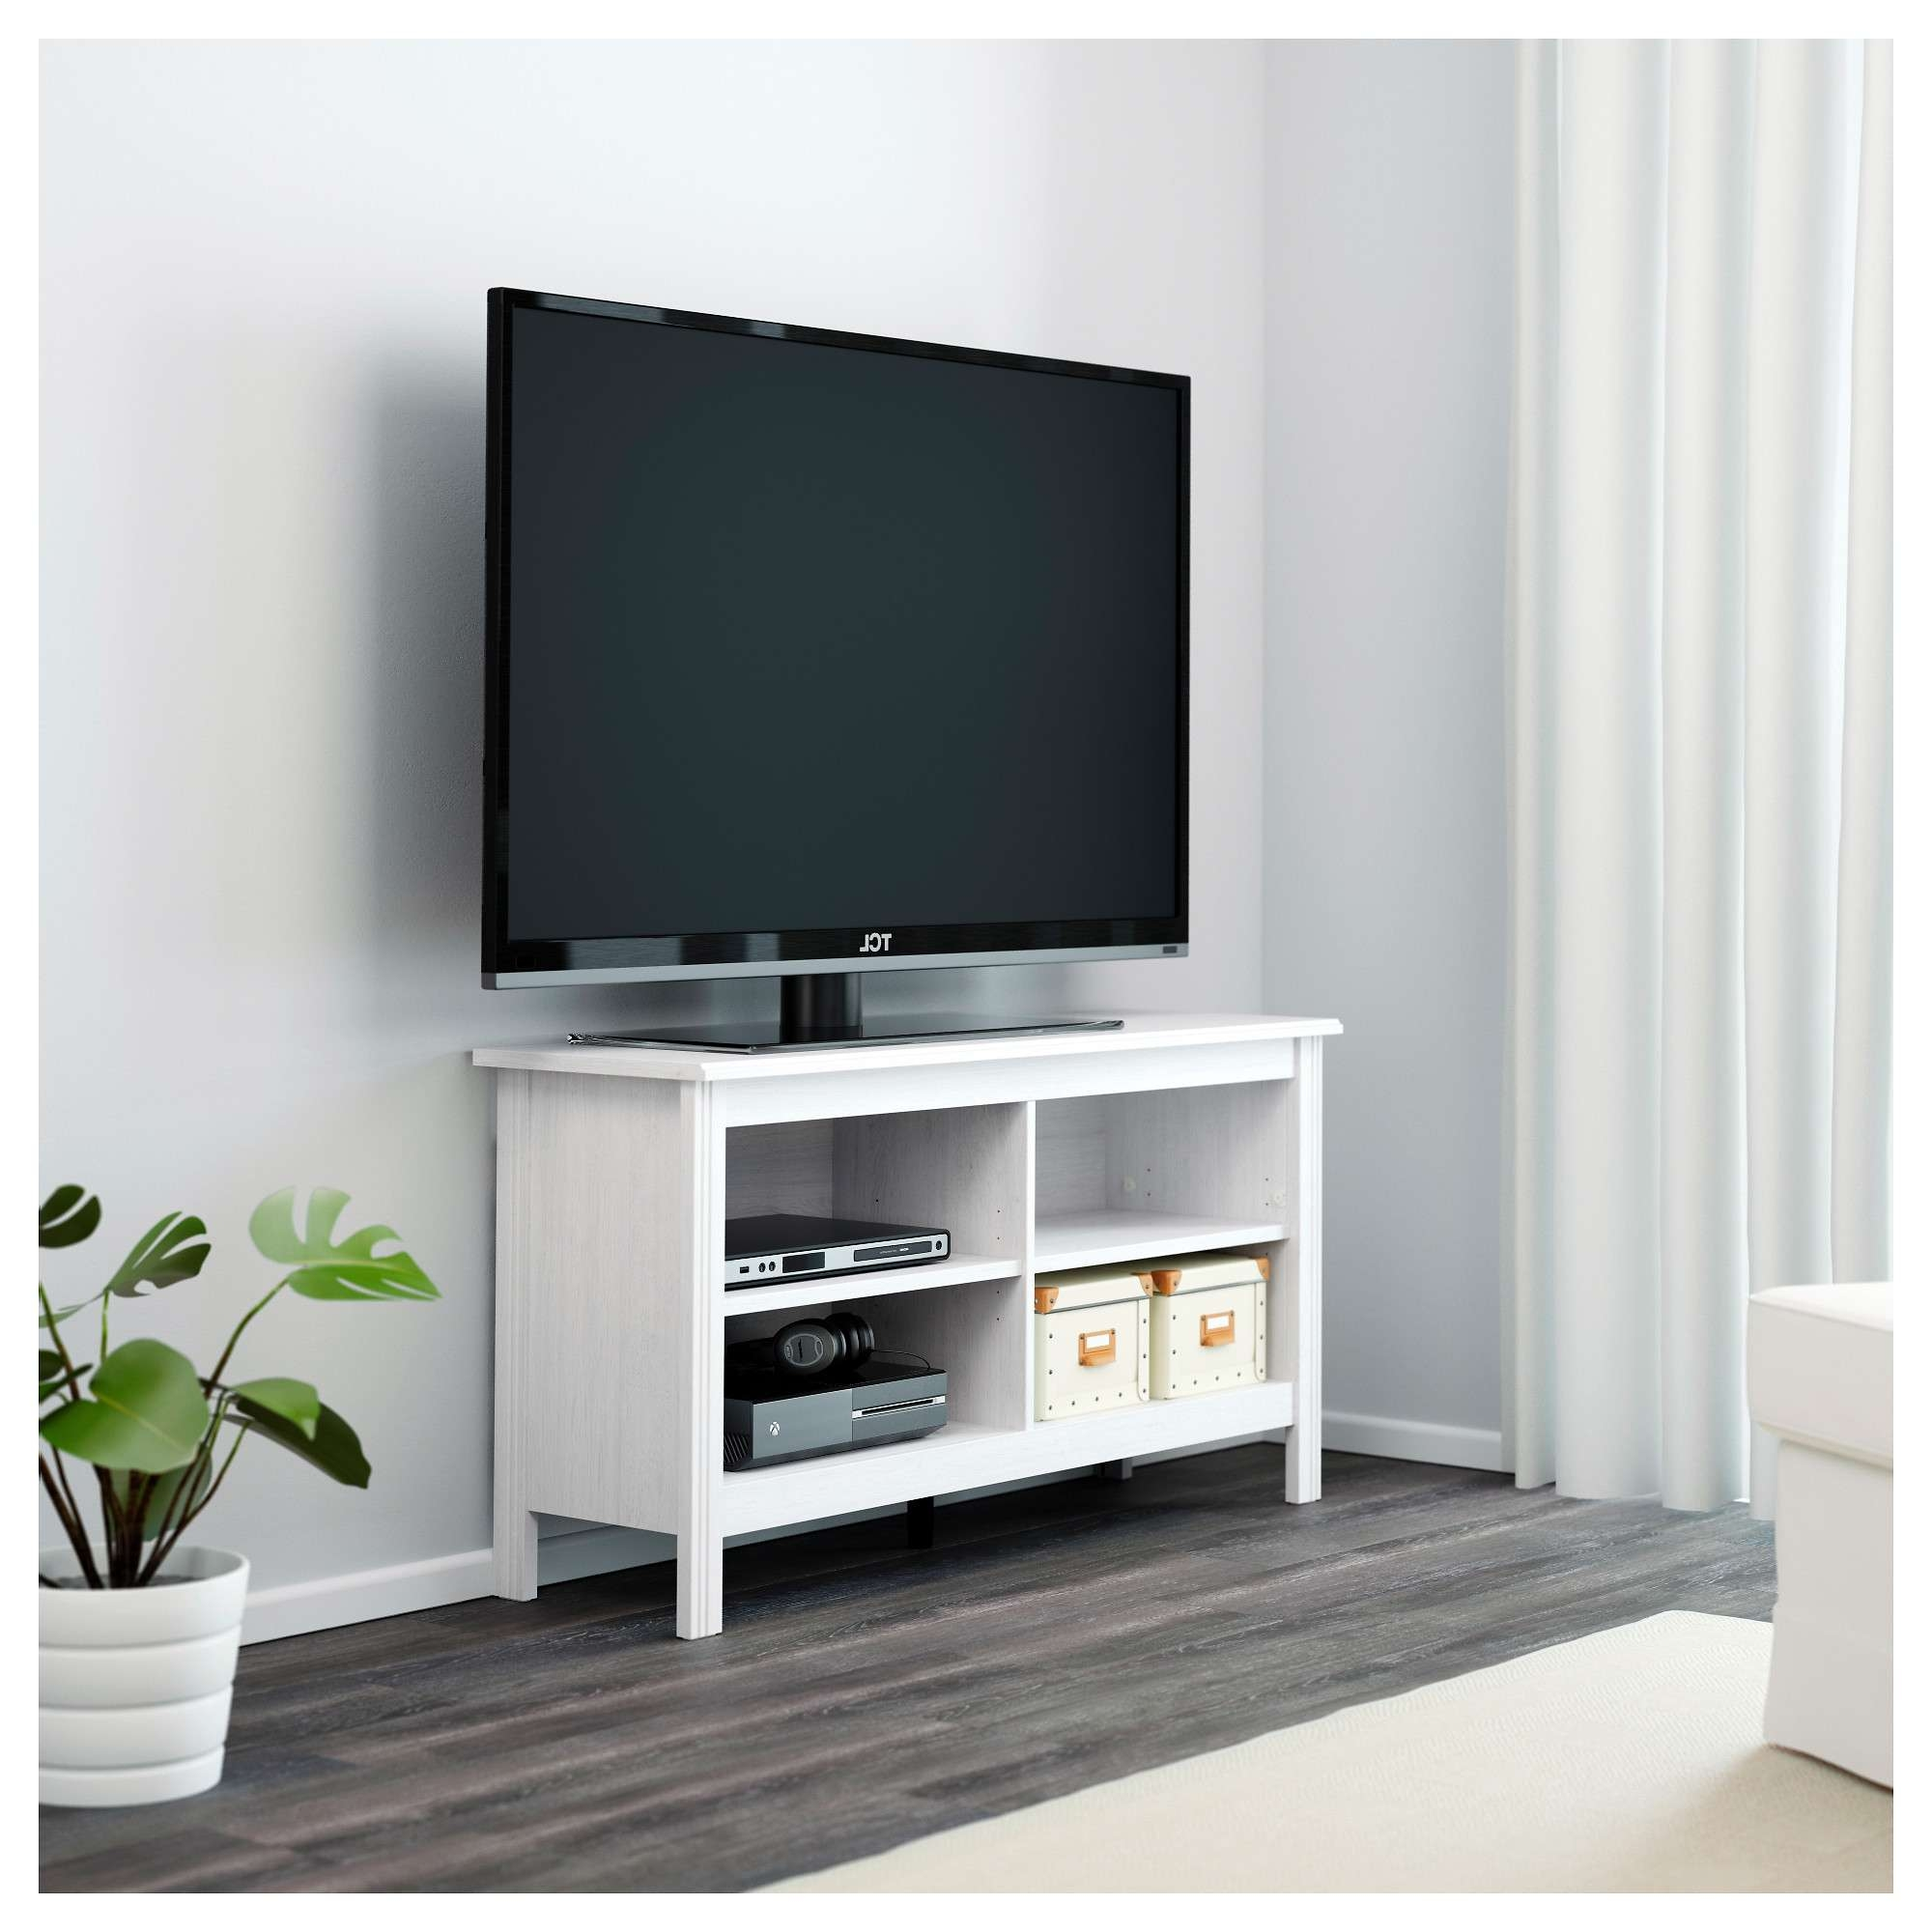 products tv main whi stand alphason and cabinet stands racks image av helium white